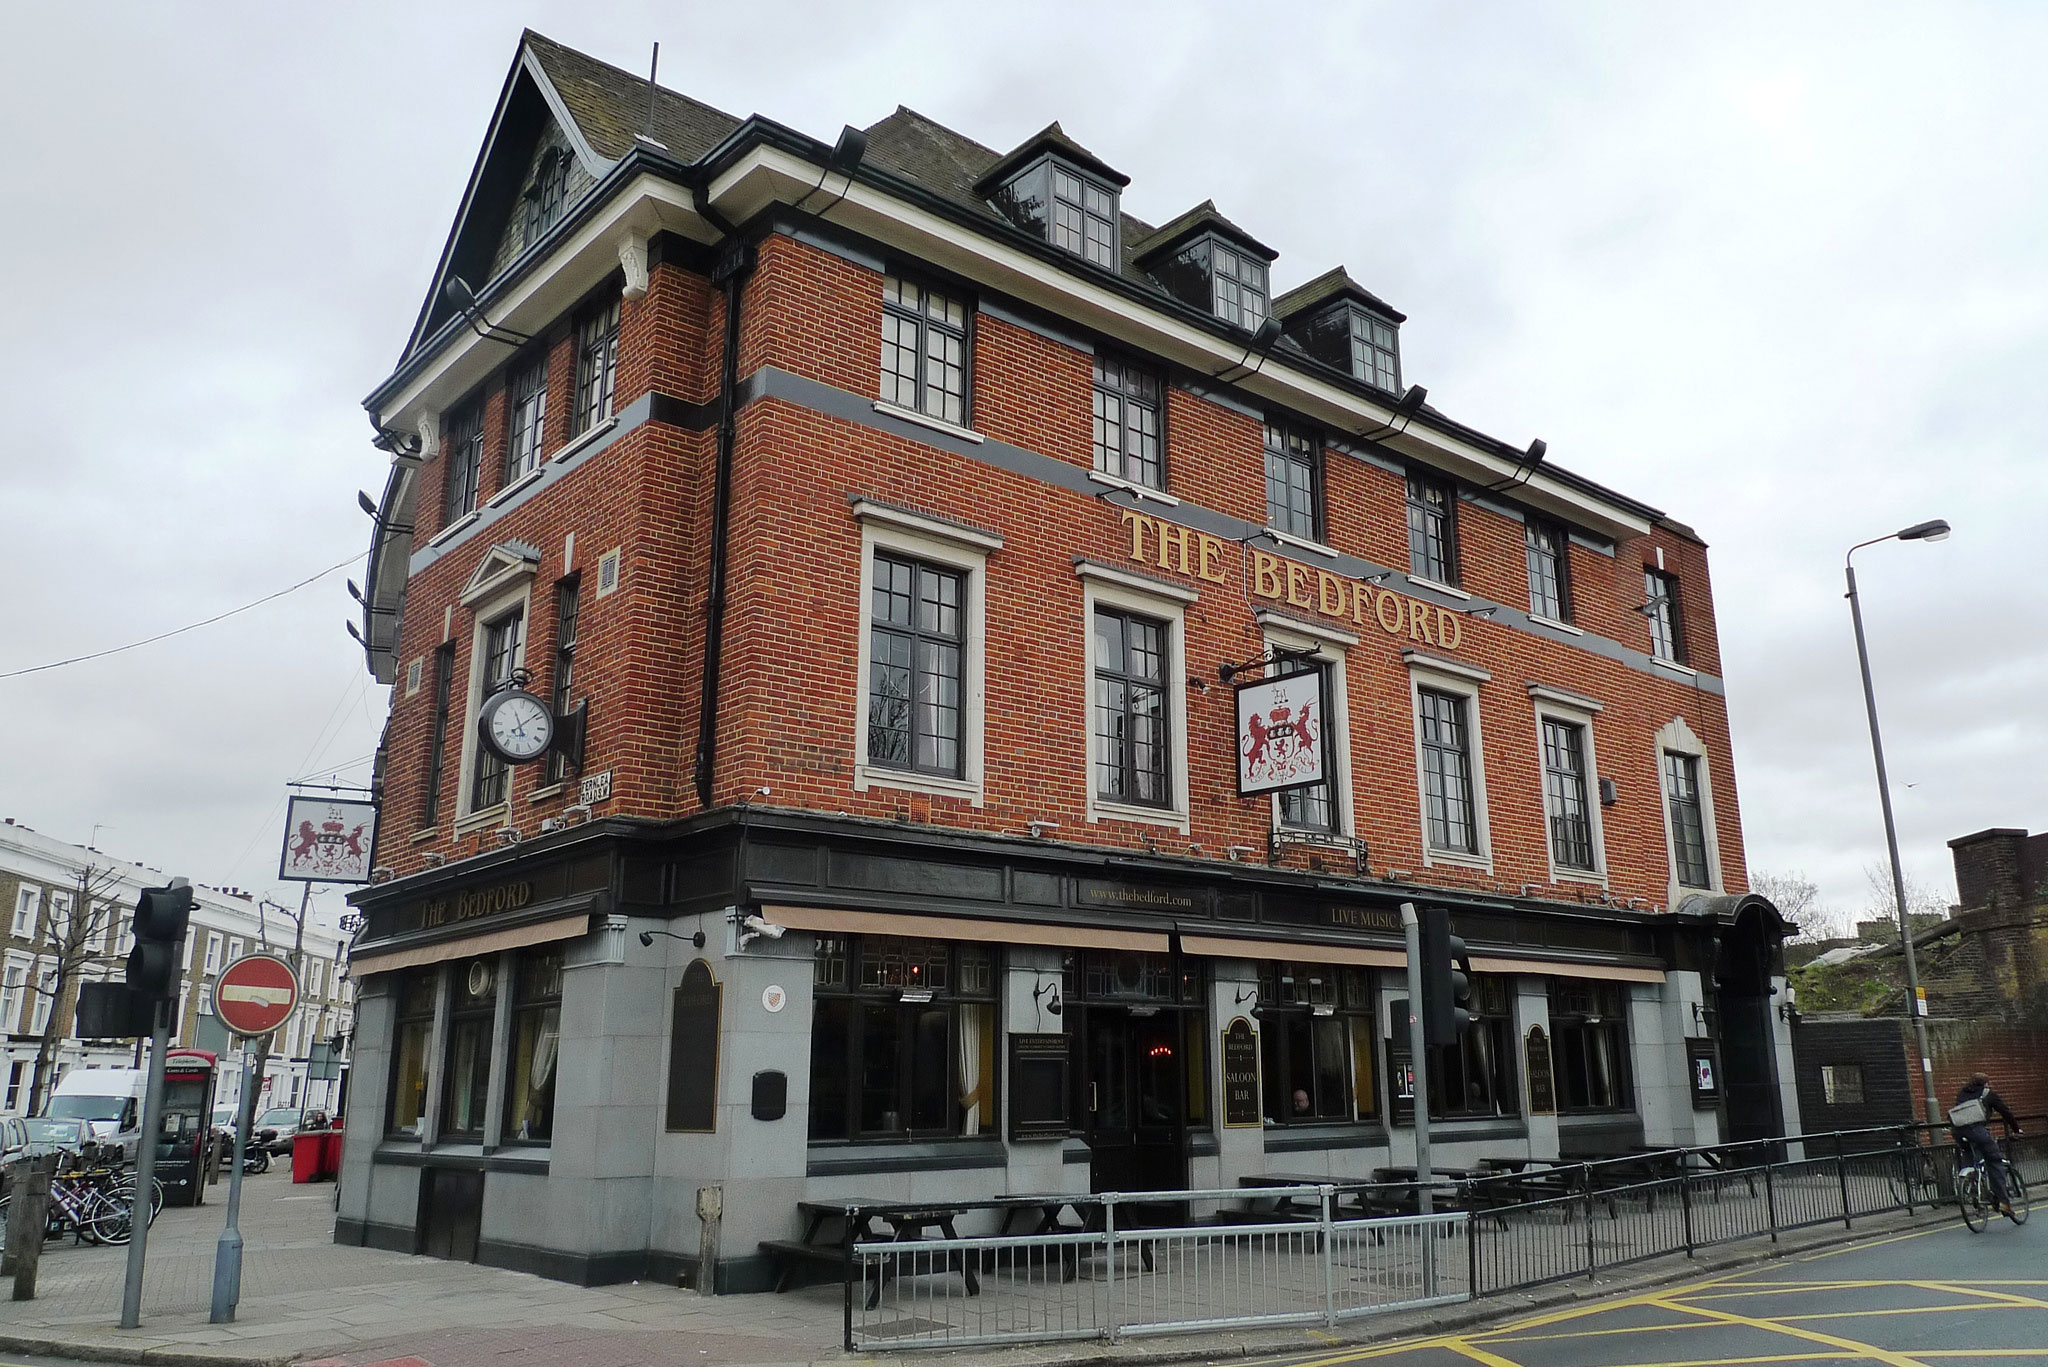 Theatre N16 is moving to a space above The Bedford pub in Balham. Photo: Ewan Munro/Flickr